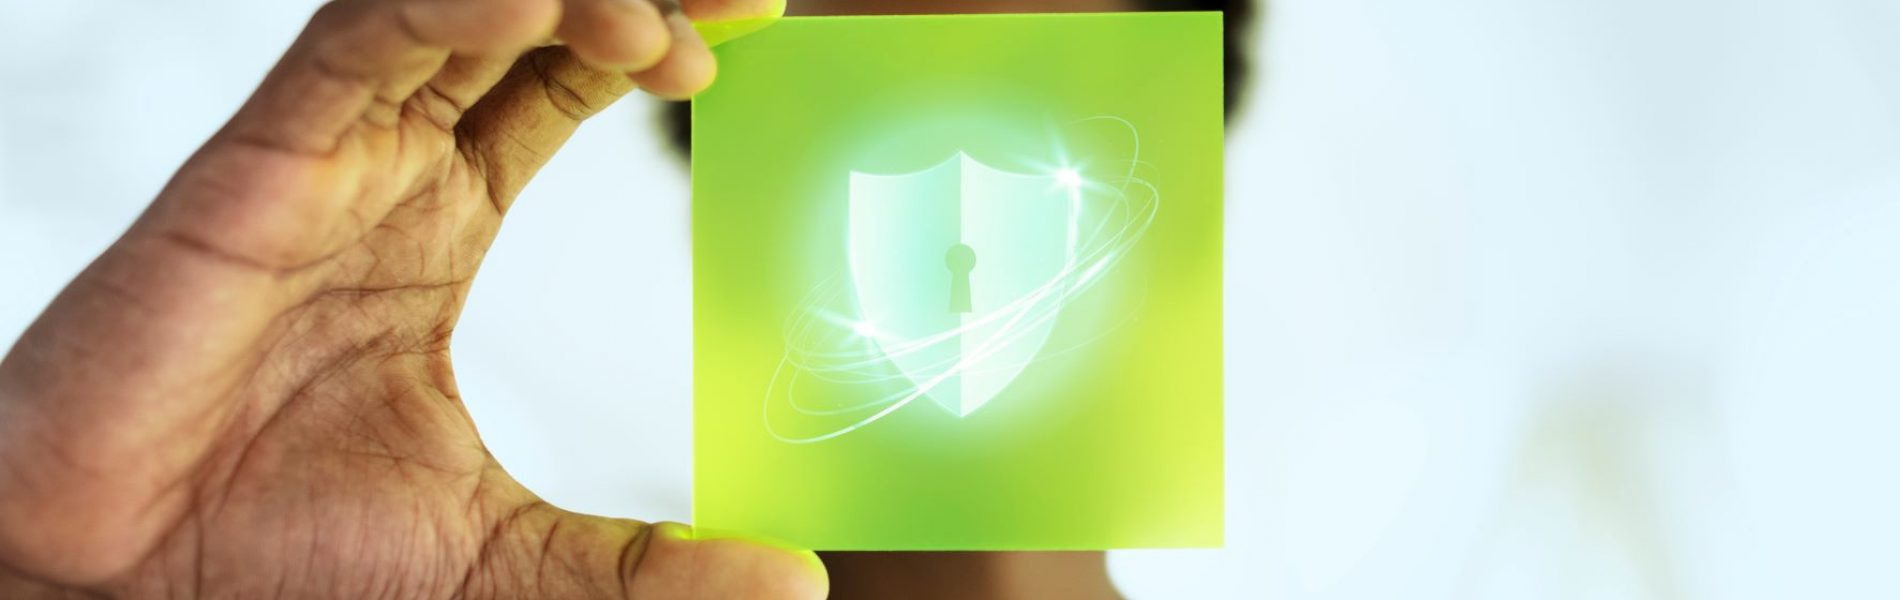 security-protection-hologram